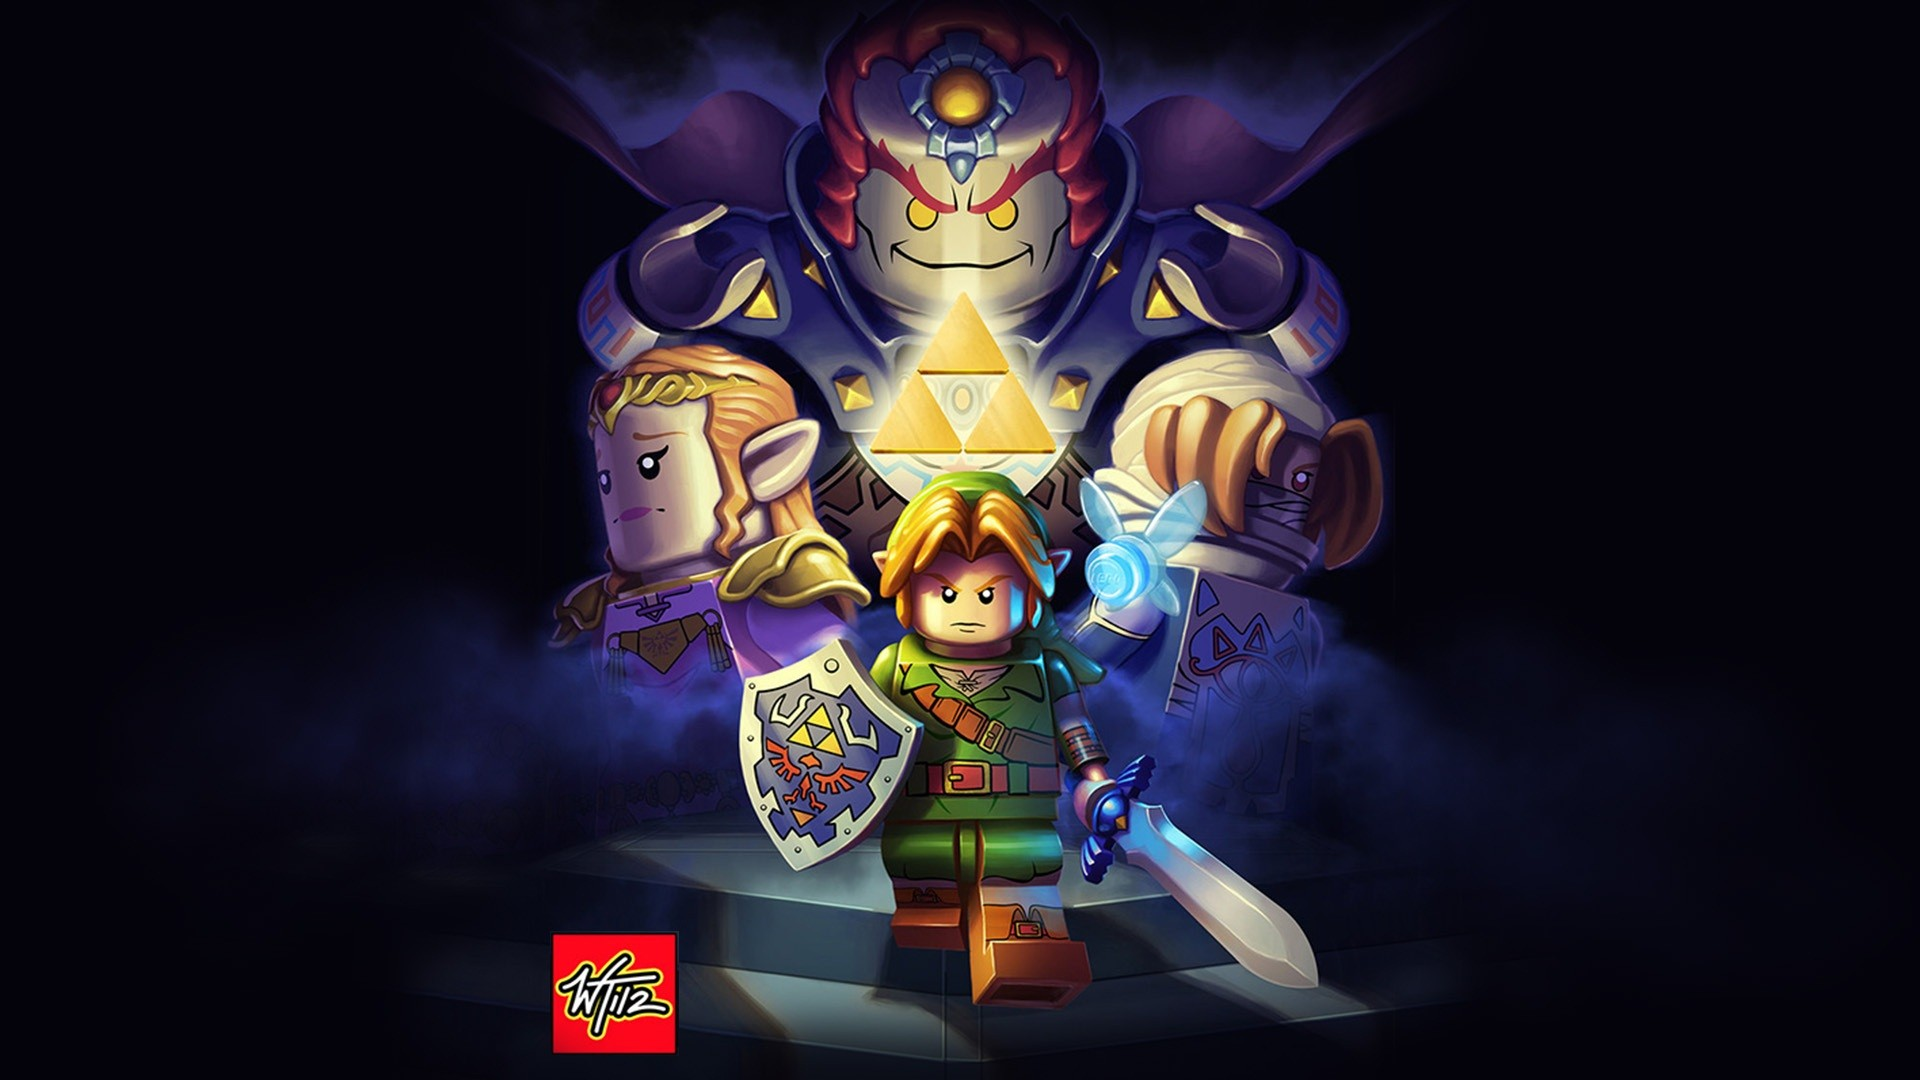 Lego Legend Of Zelda Hd Wallpaper